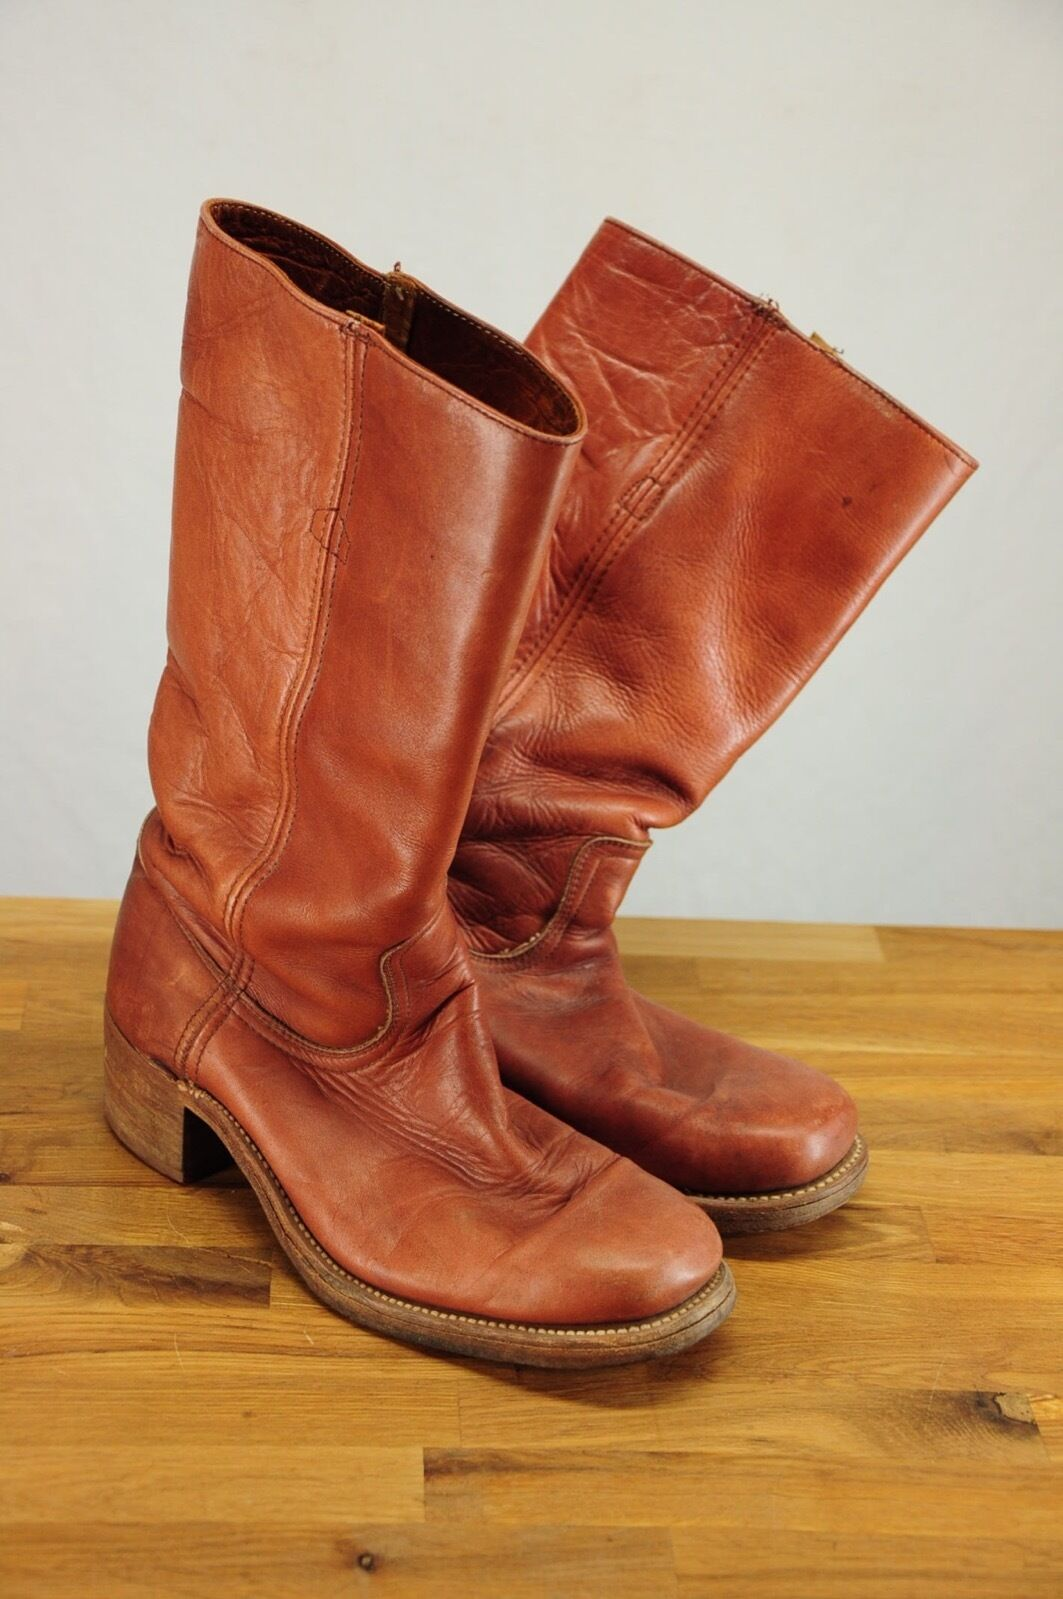 Vintage FRYE Campus Stivali Thick Saddle Brown Pelle in Made in Pelle  A Pull On 8.5D b54314